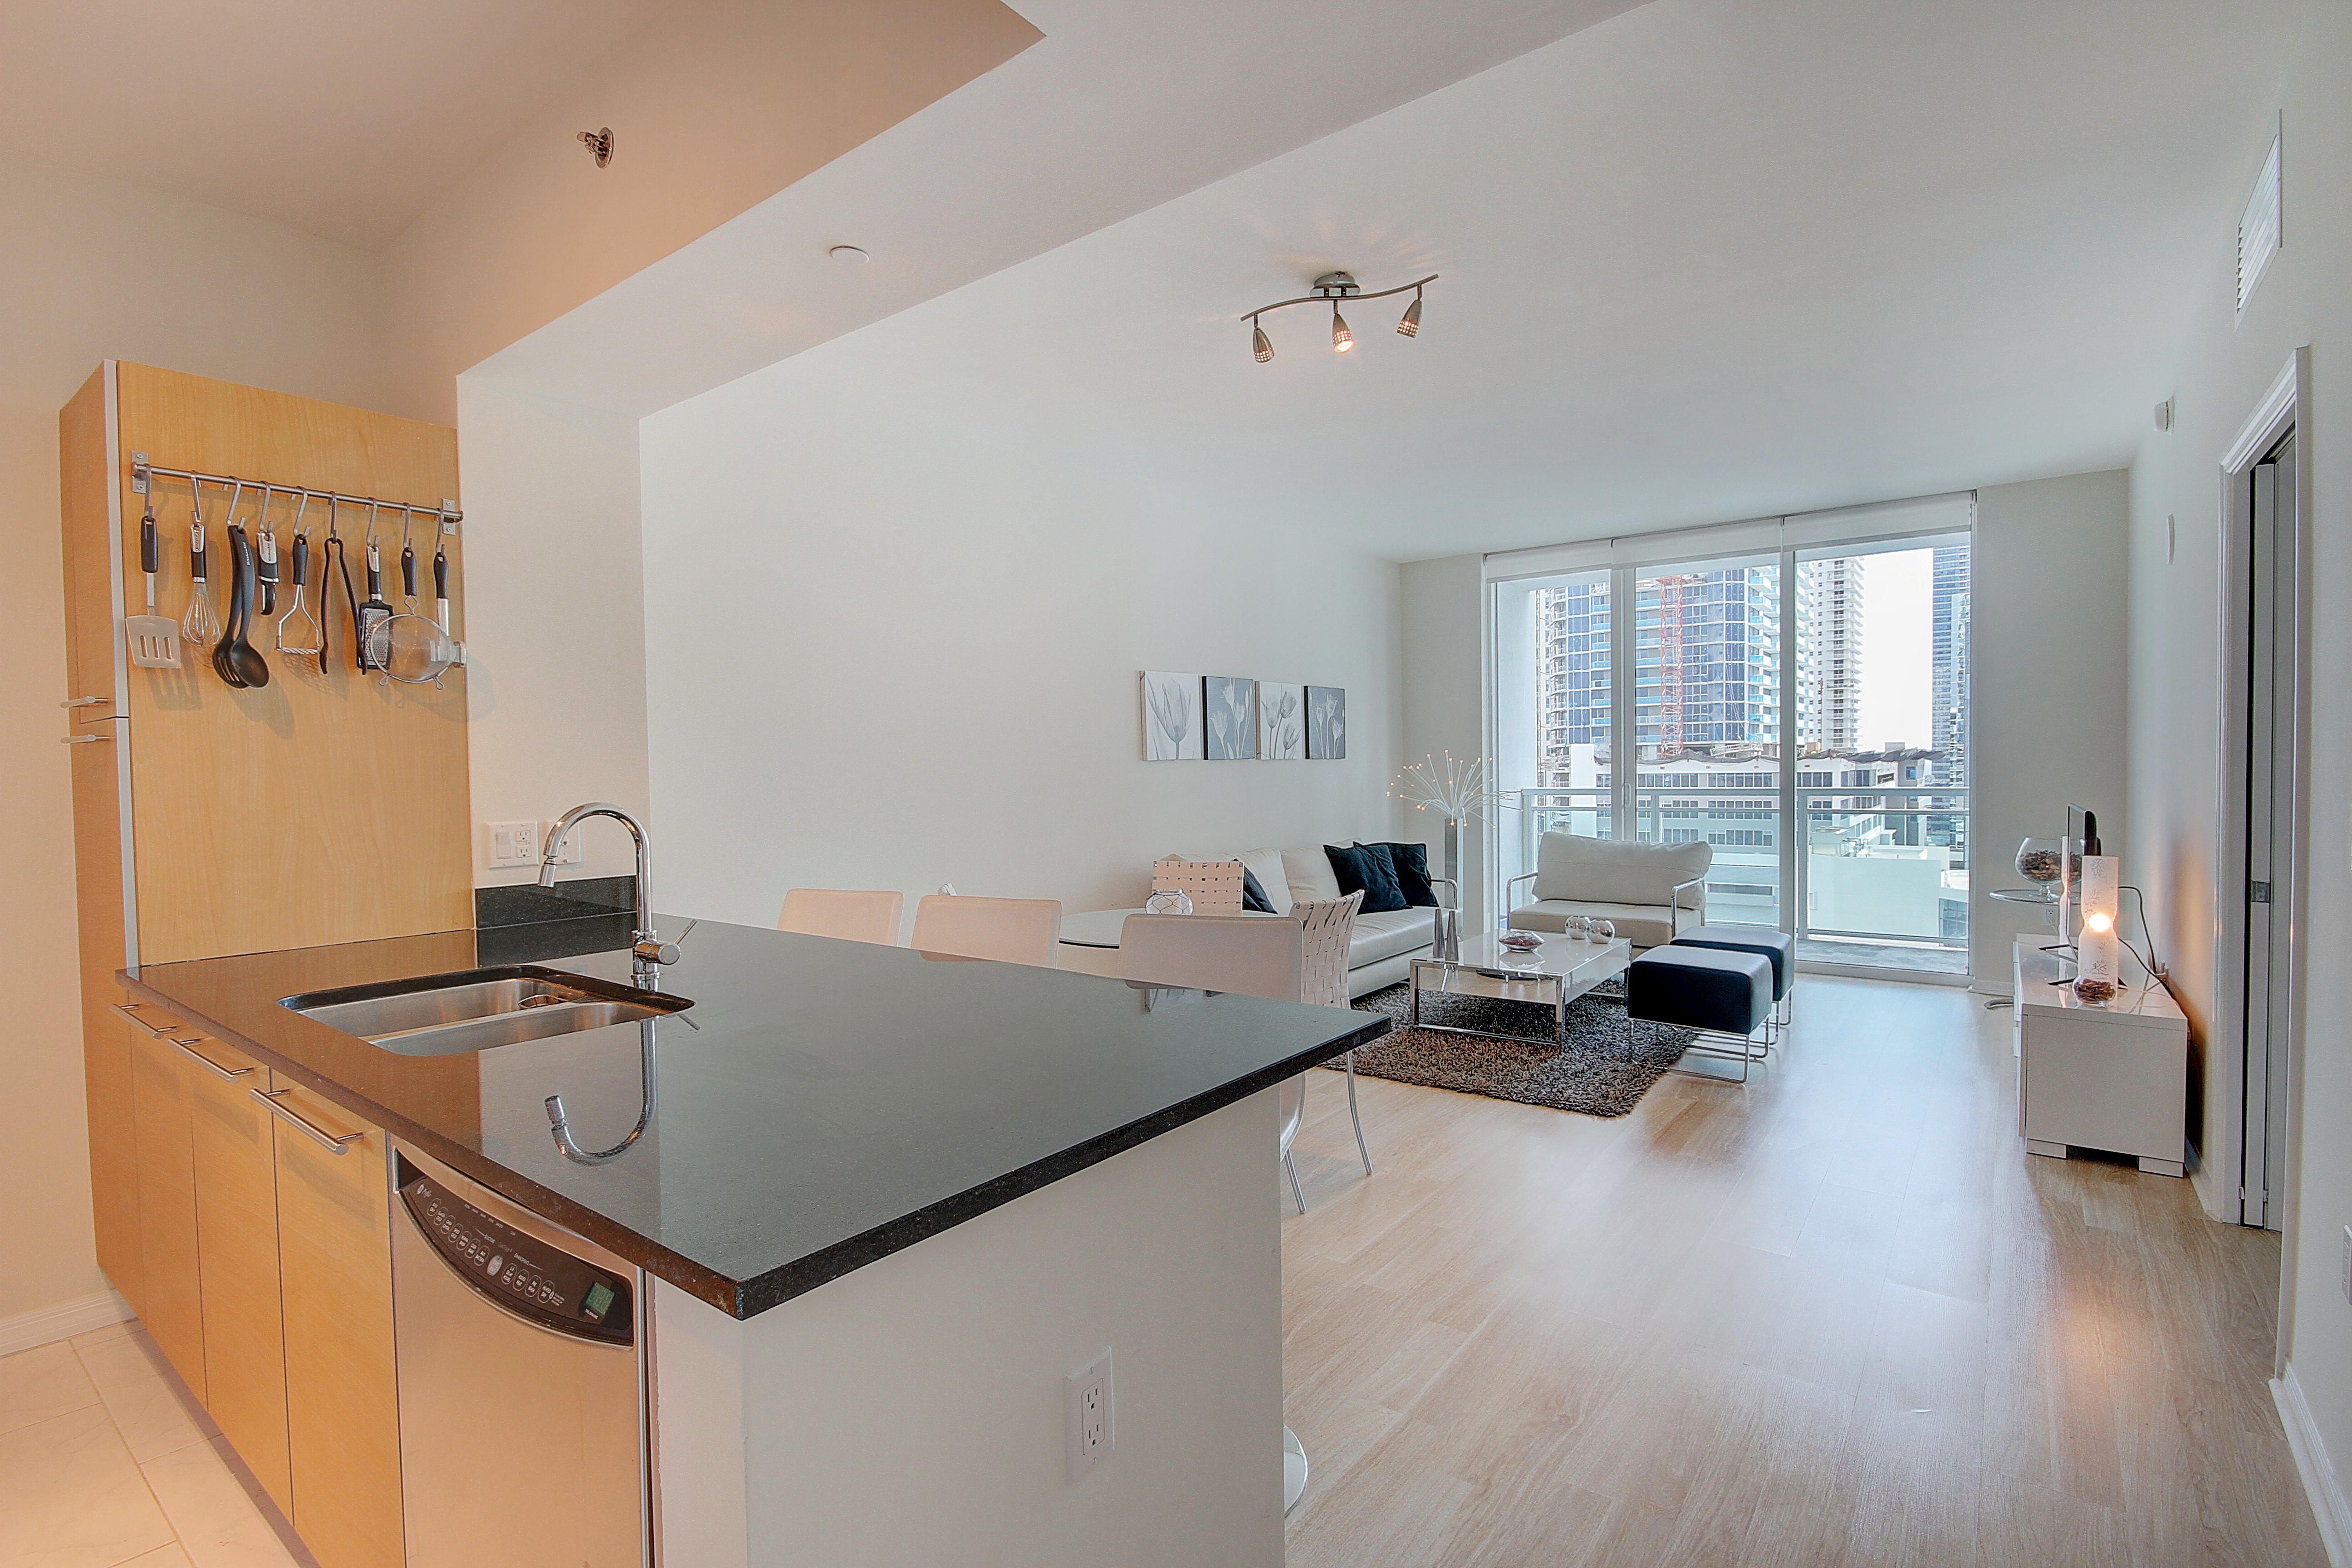 ... wine storage room and a party kitchen. This condo is perfect for Jackson Doctors or wall street executives. Donu0027t miss out on the opportunity to call ... & The Plaza Brickell #1903